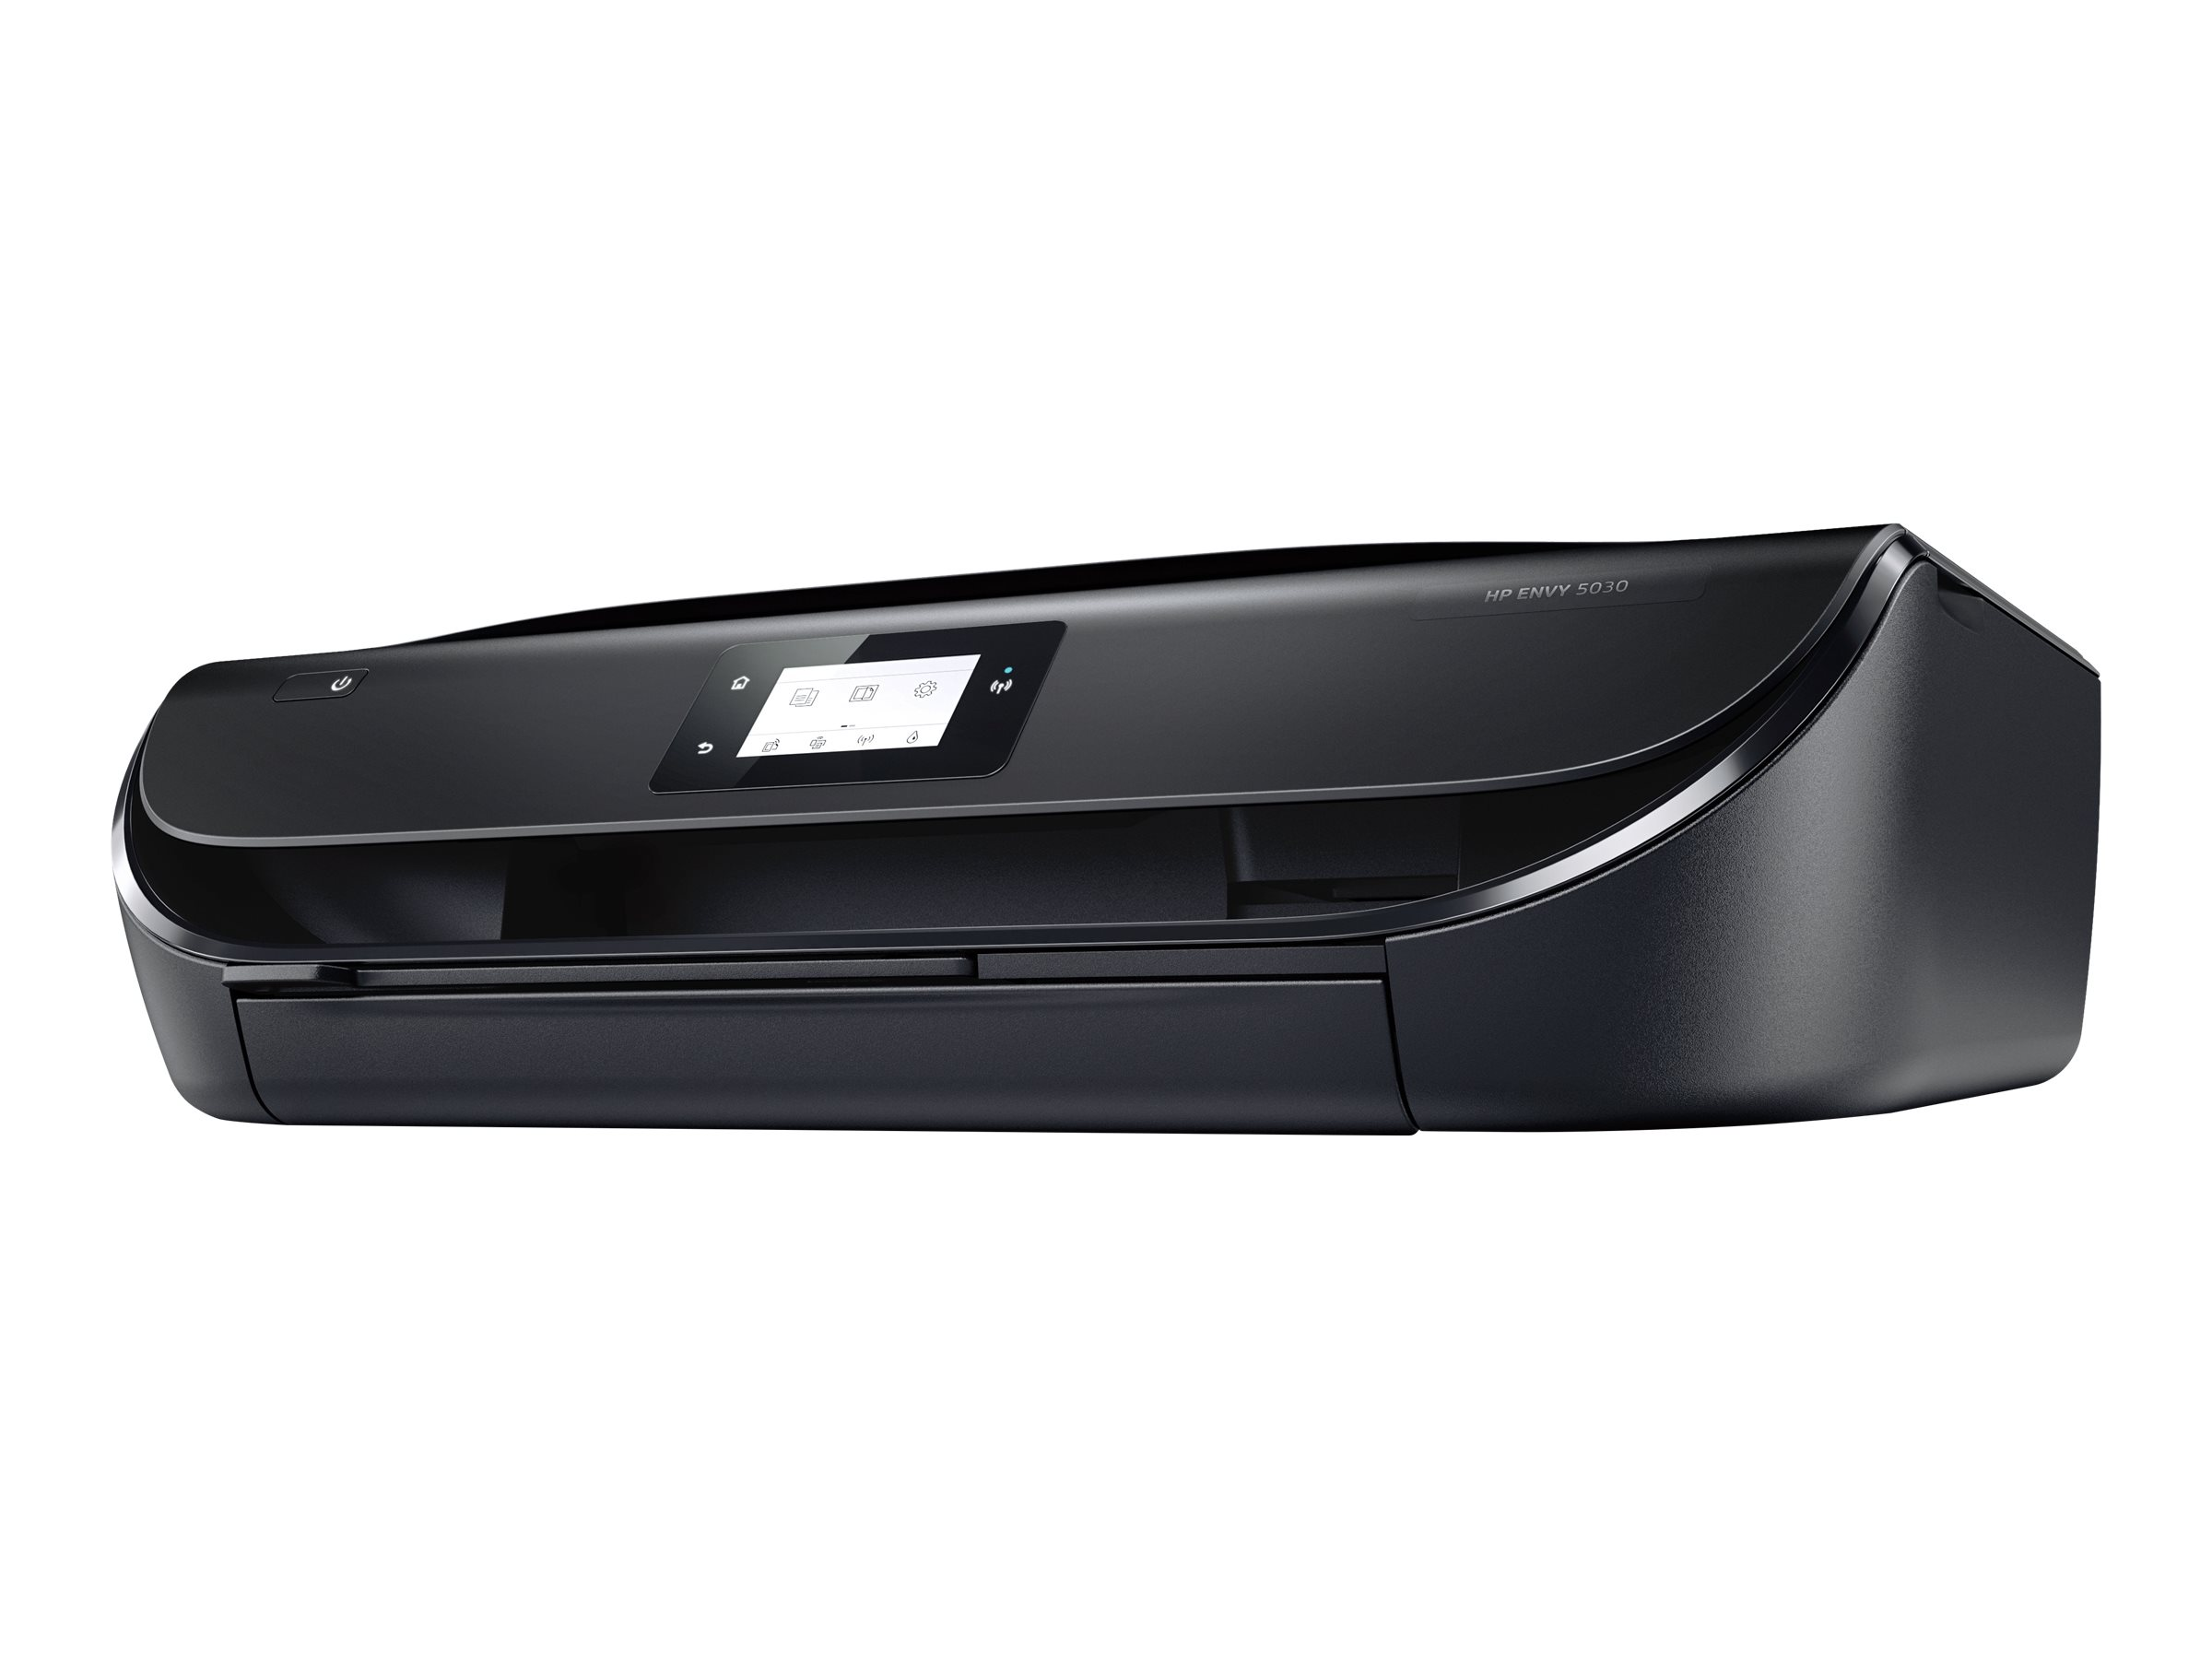 HP Envy 5030 All-in-One - Multifunktionsdrucker - Farbe - Tintenstrahl - Letter A (216 x 279 mm)/A4 (210 x 297 mm) (Original) -